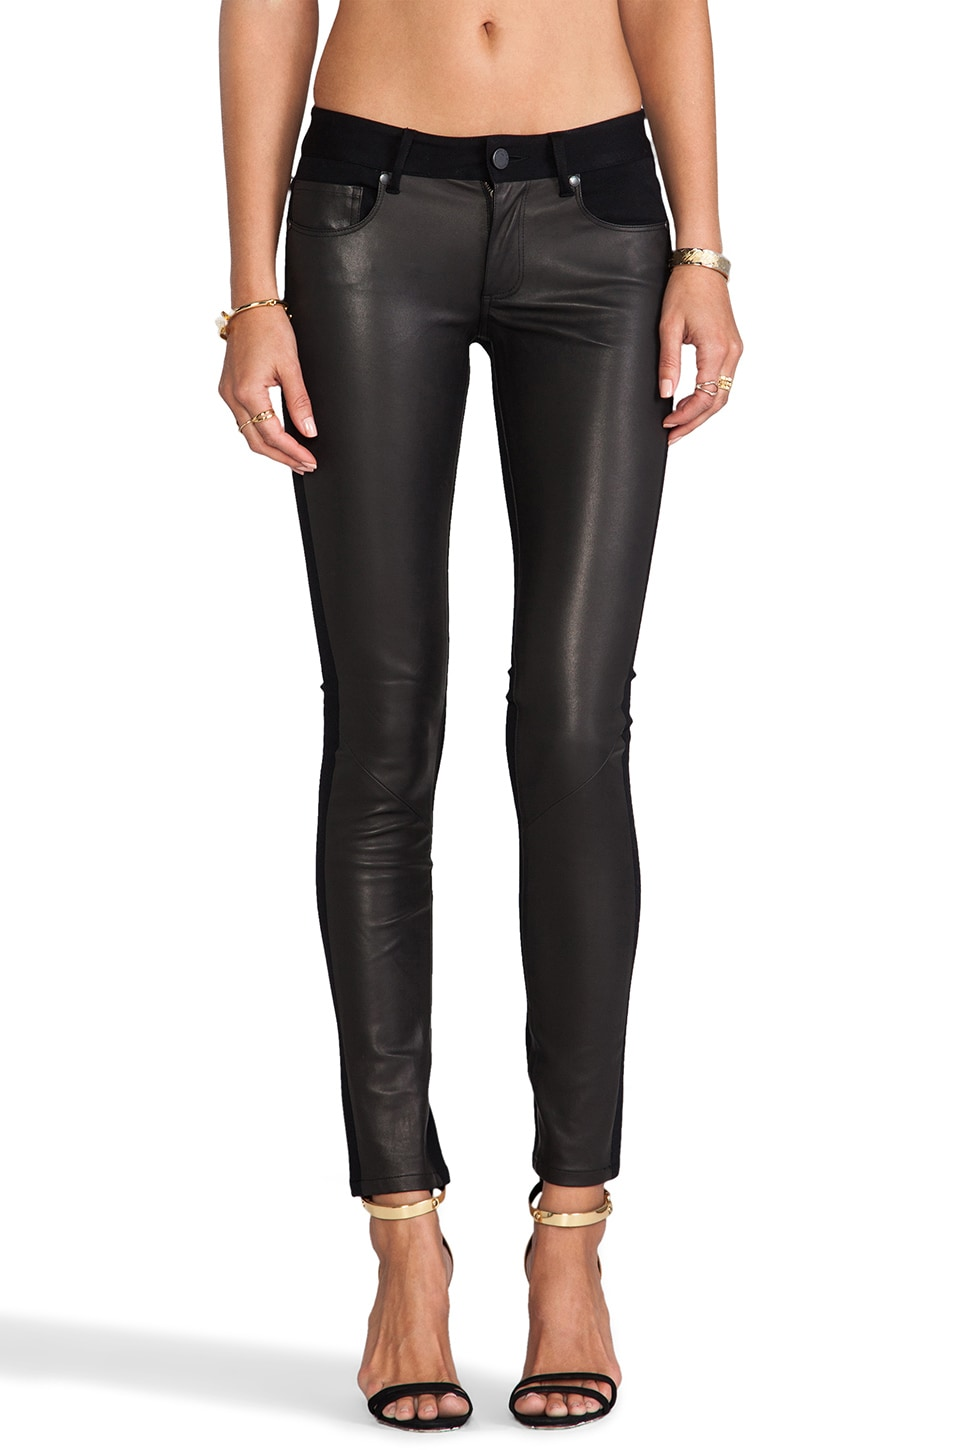 Paige Denim Emily Ponte Leather Pant in Black